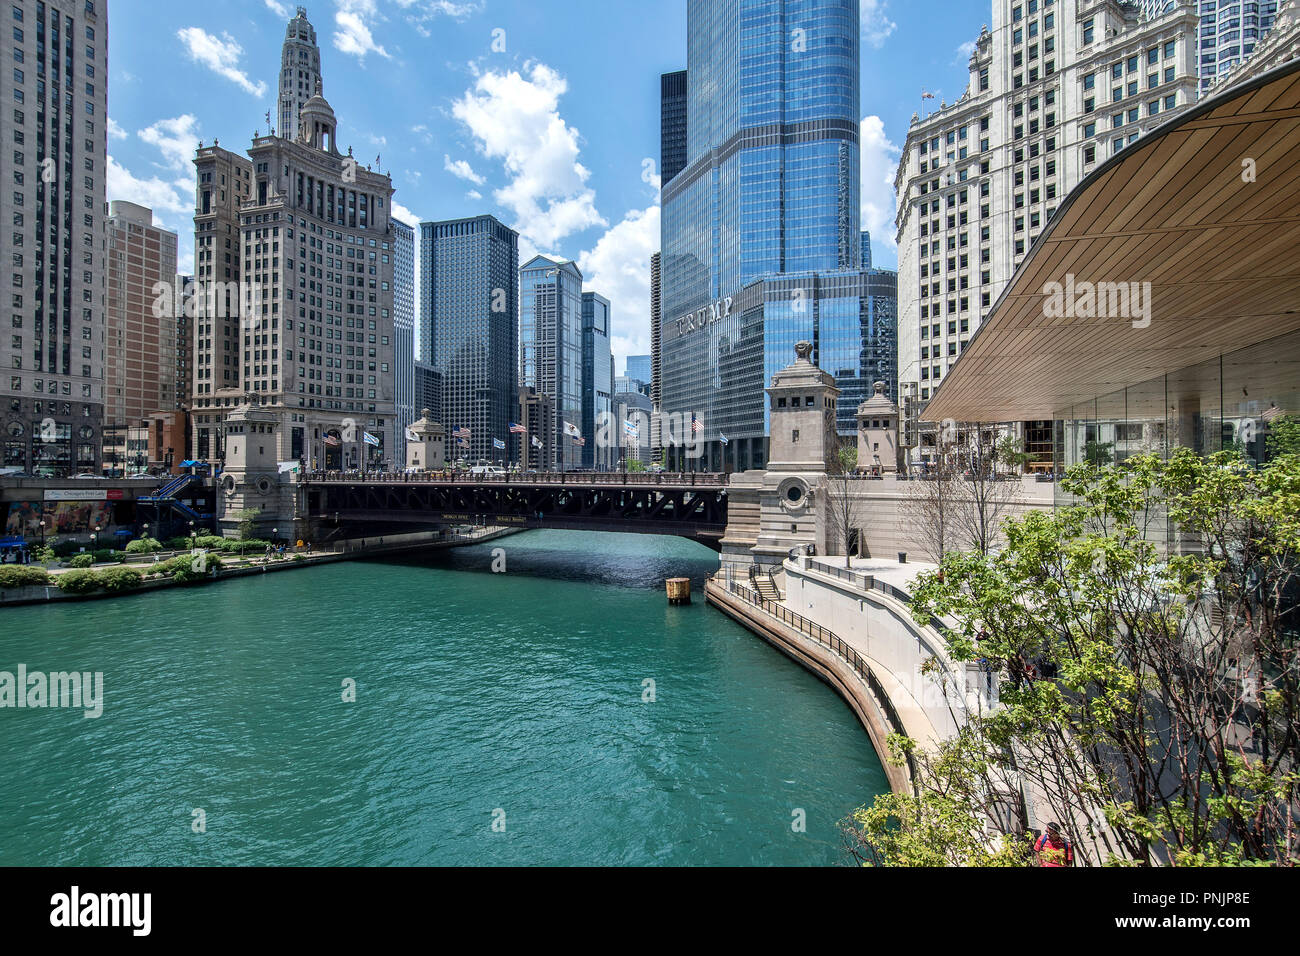 View of the Chicago River with the DuSable Bridge and Trump International Tower, Downtown Chicago, IL. - Stock Image